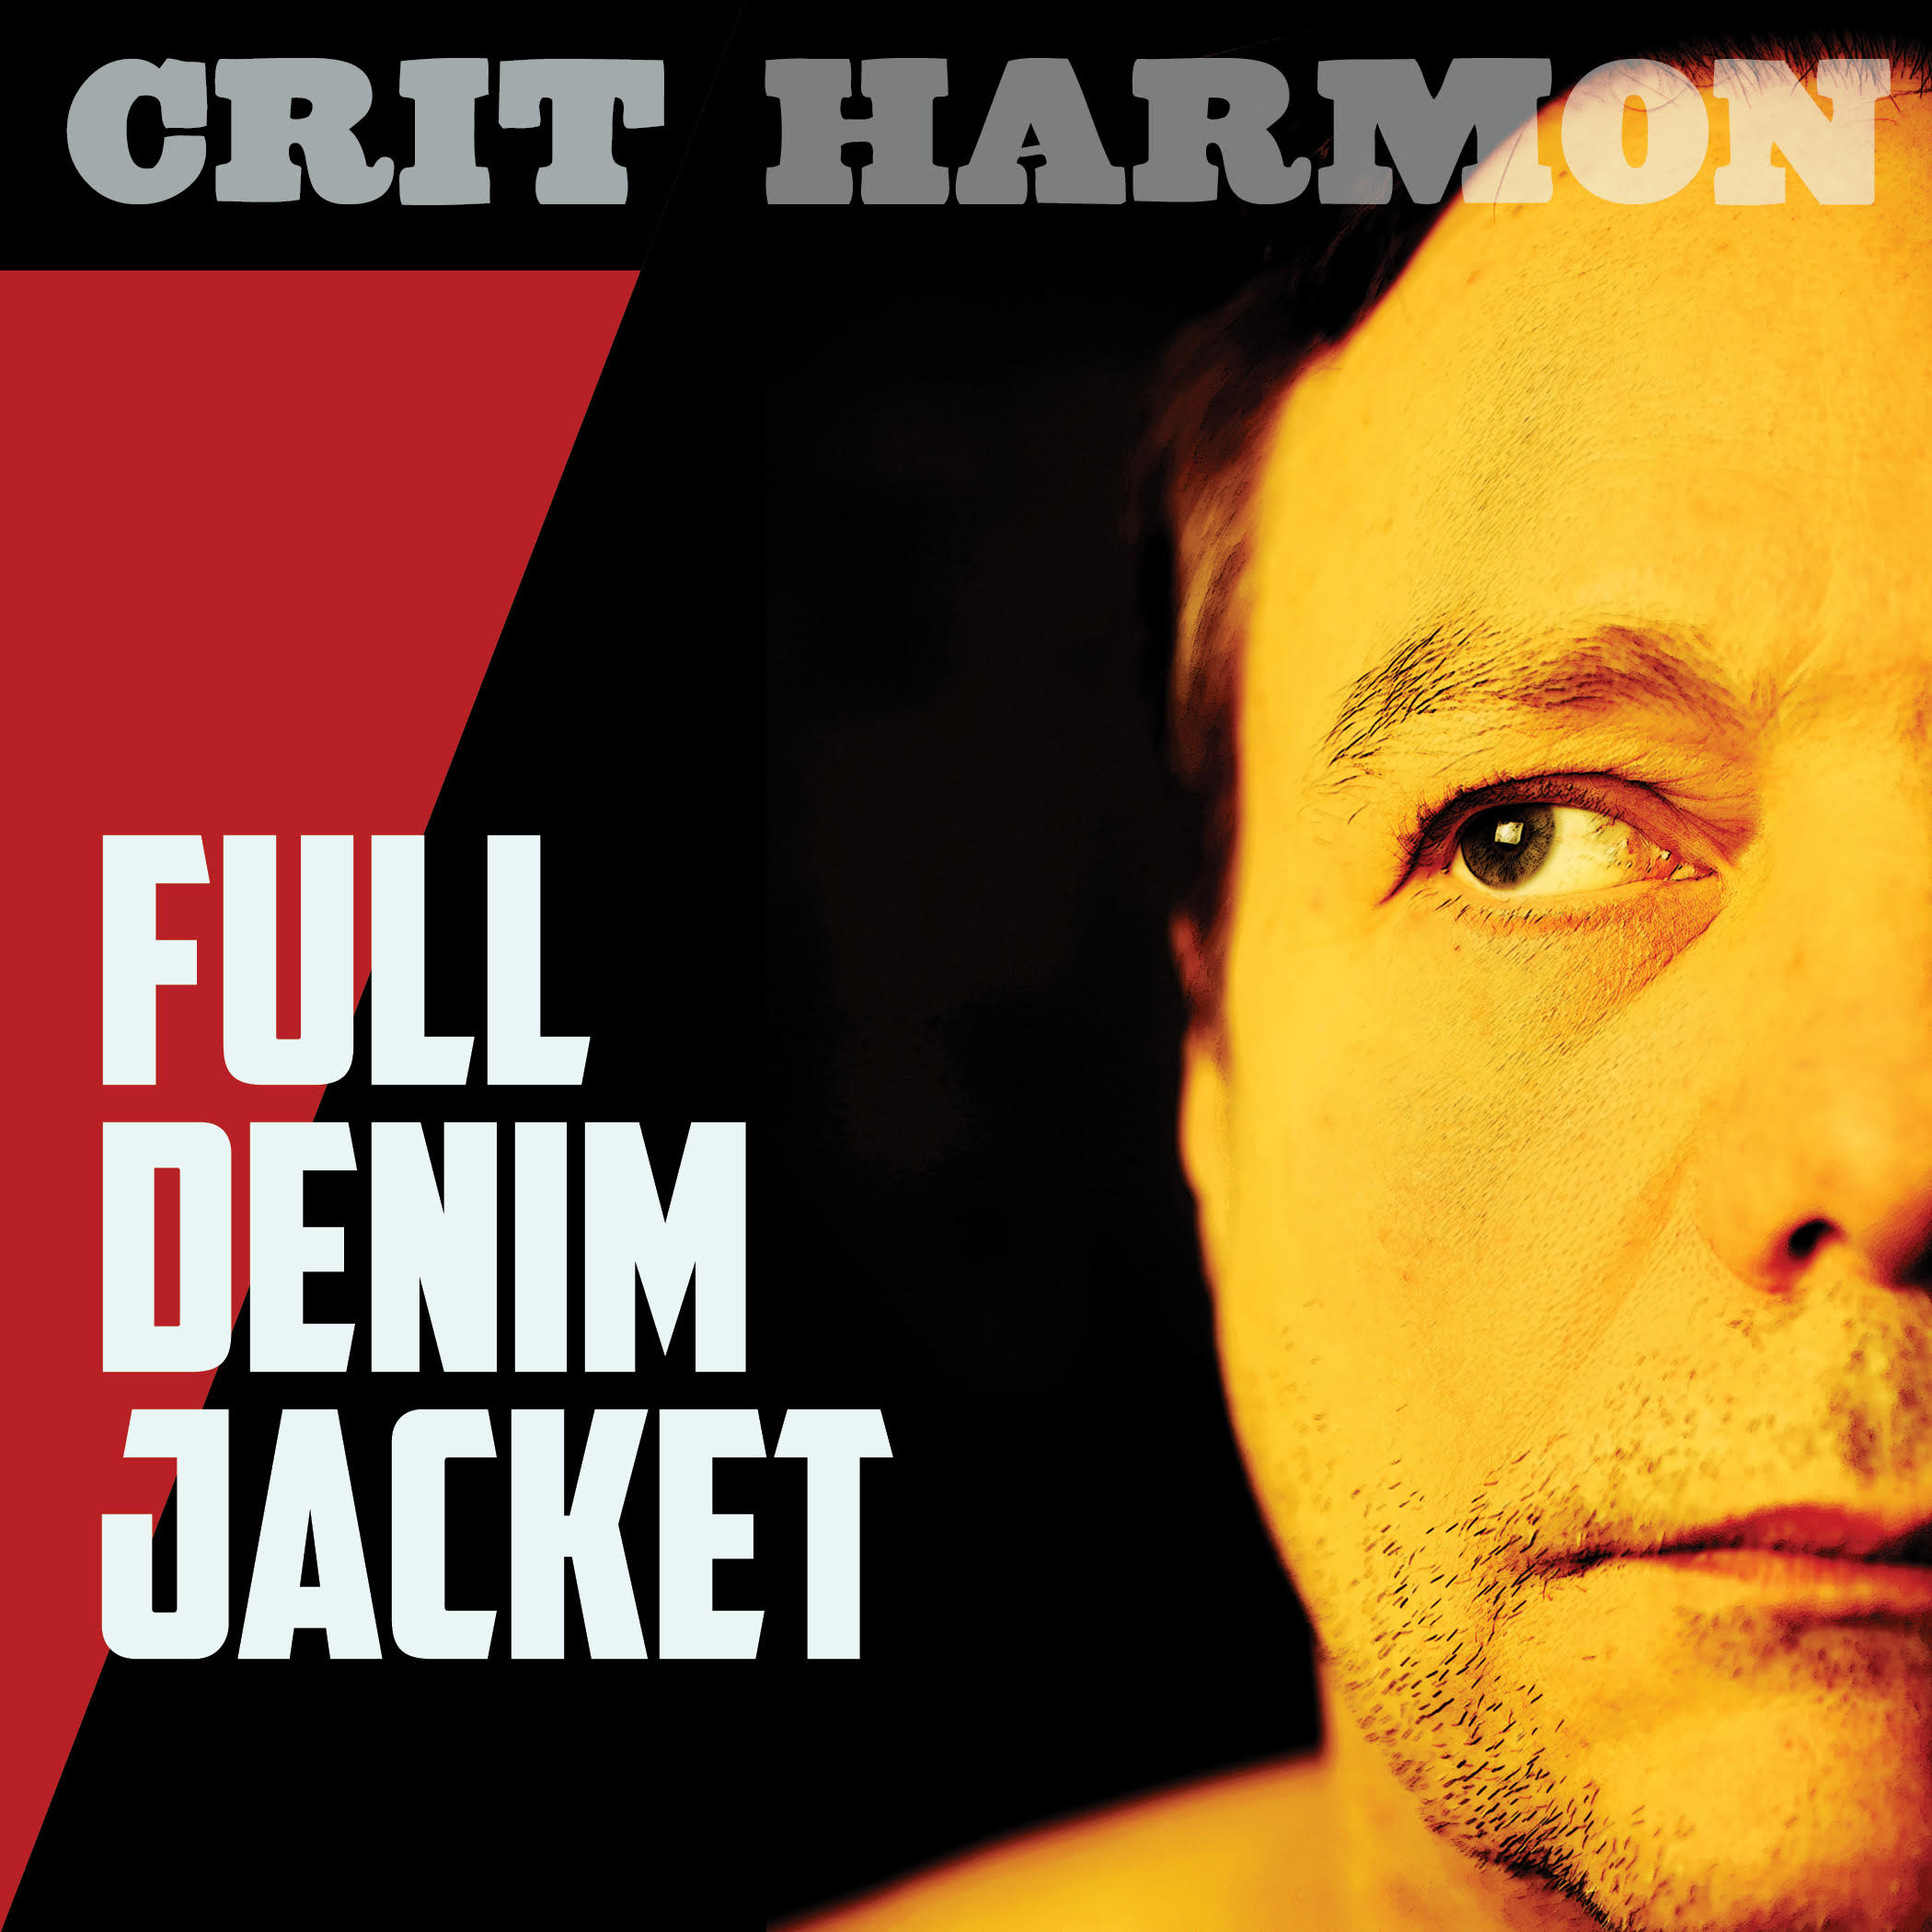 Crit Harmon - Full Denim Jacket